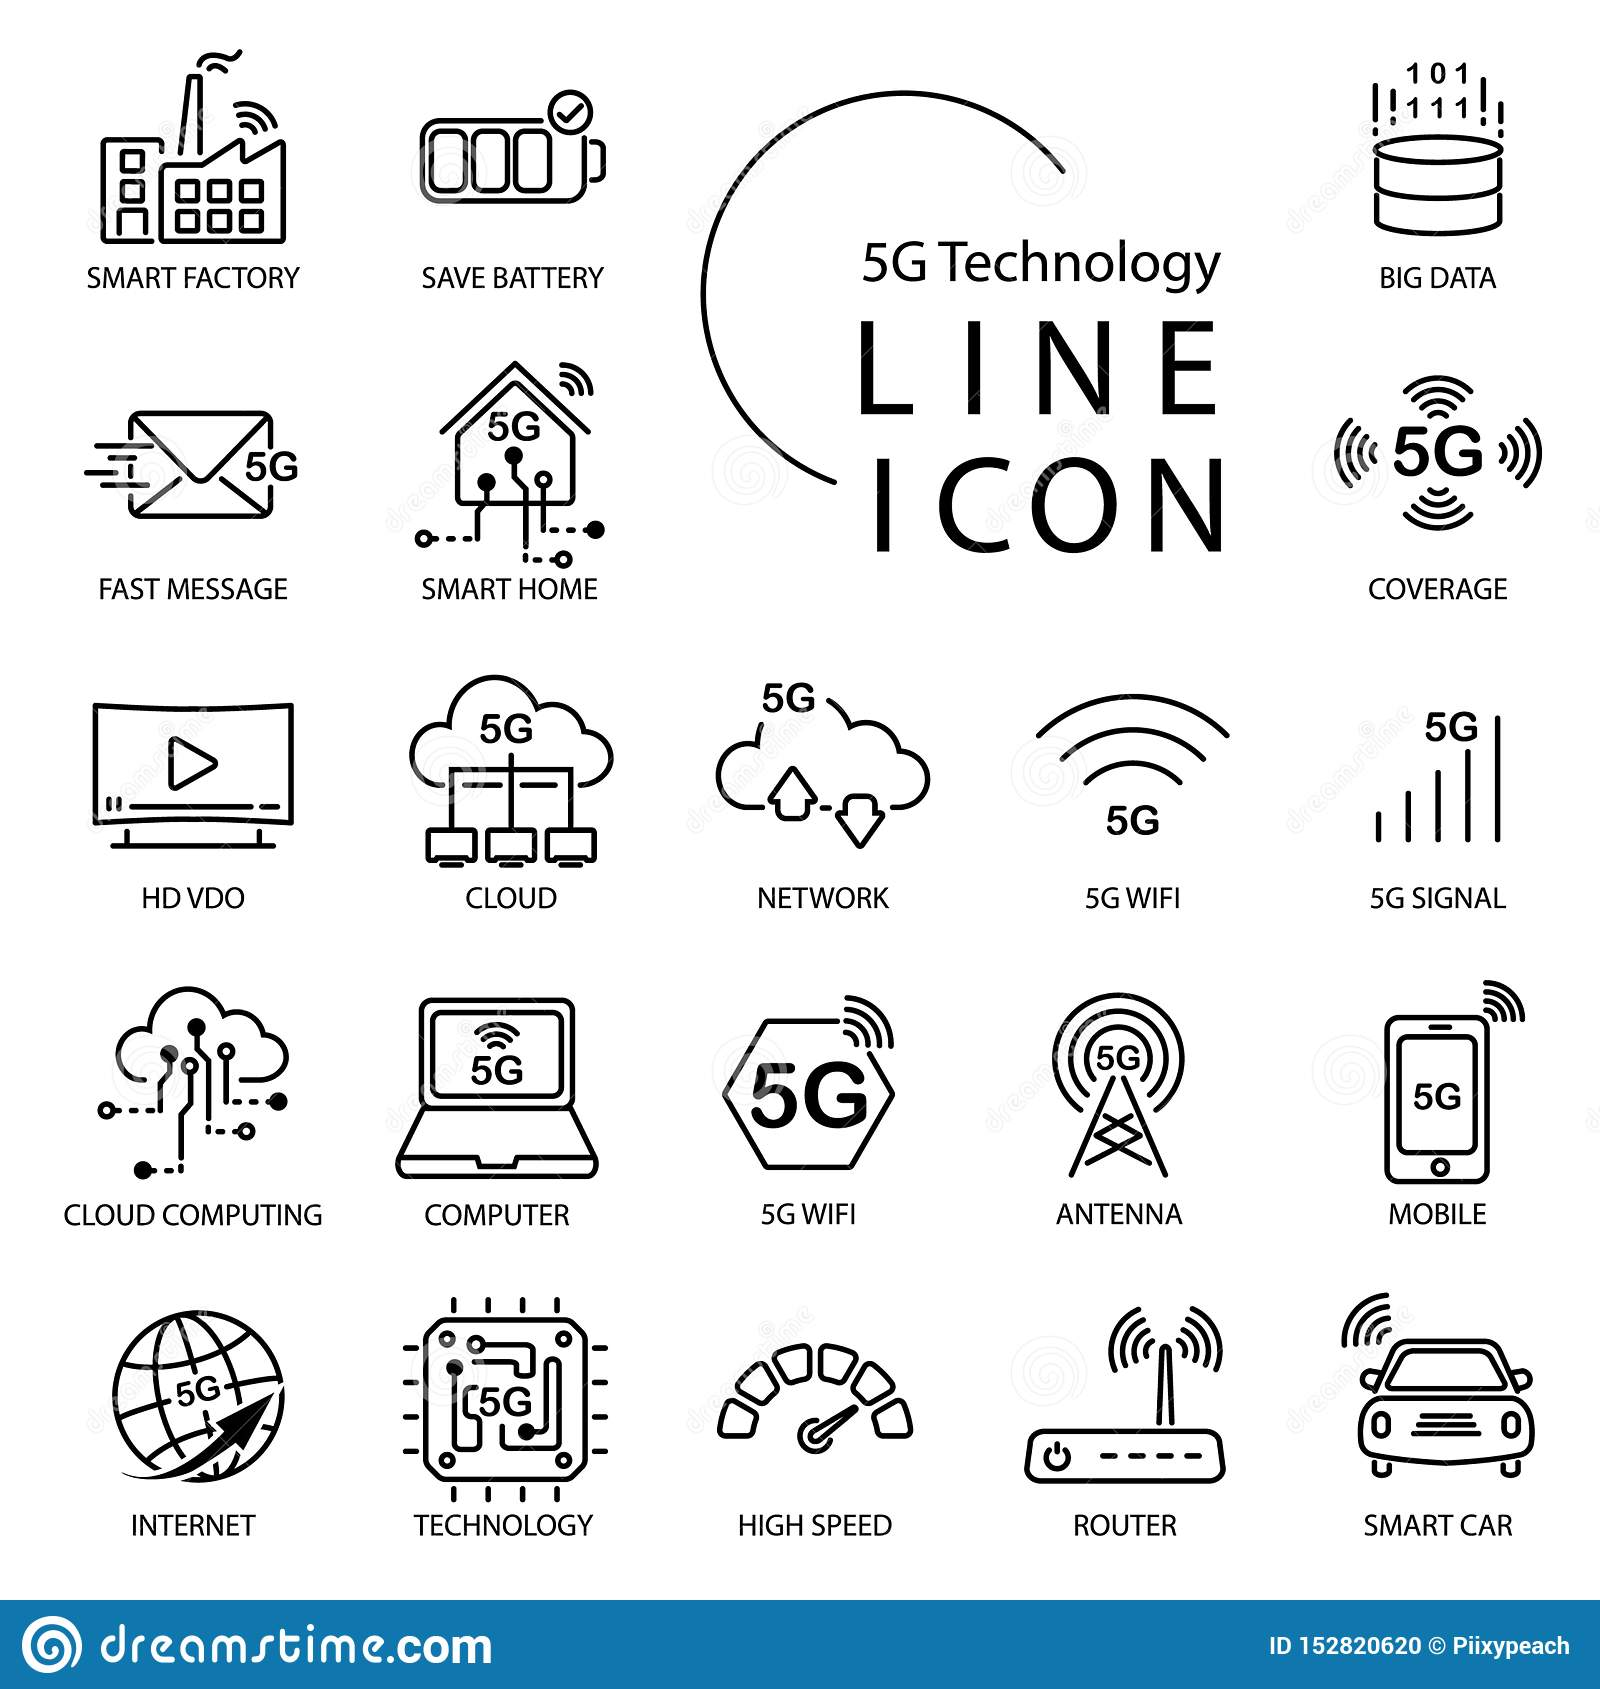 Simple line icon about 5G, Internet of thingsIOT technology. Include smart home, wifi,network,cloud and more